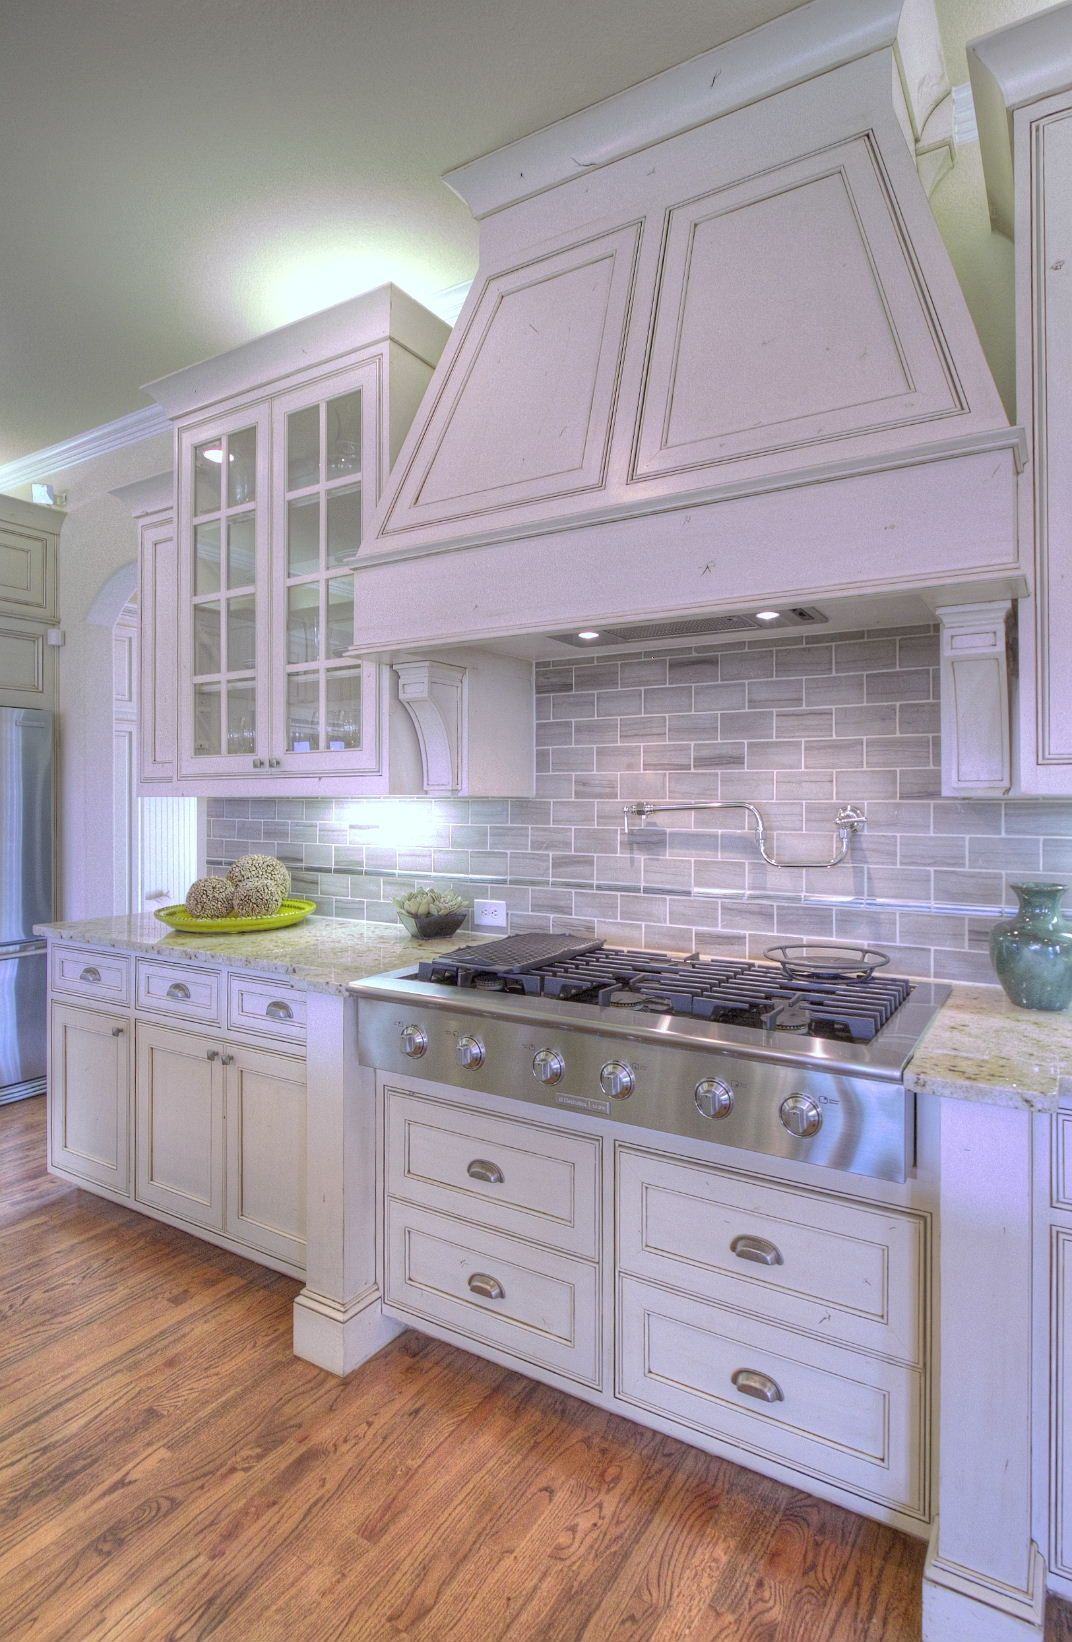 Choosing kitchen backsplash design for a dream kitchen kitchens